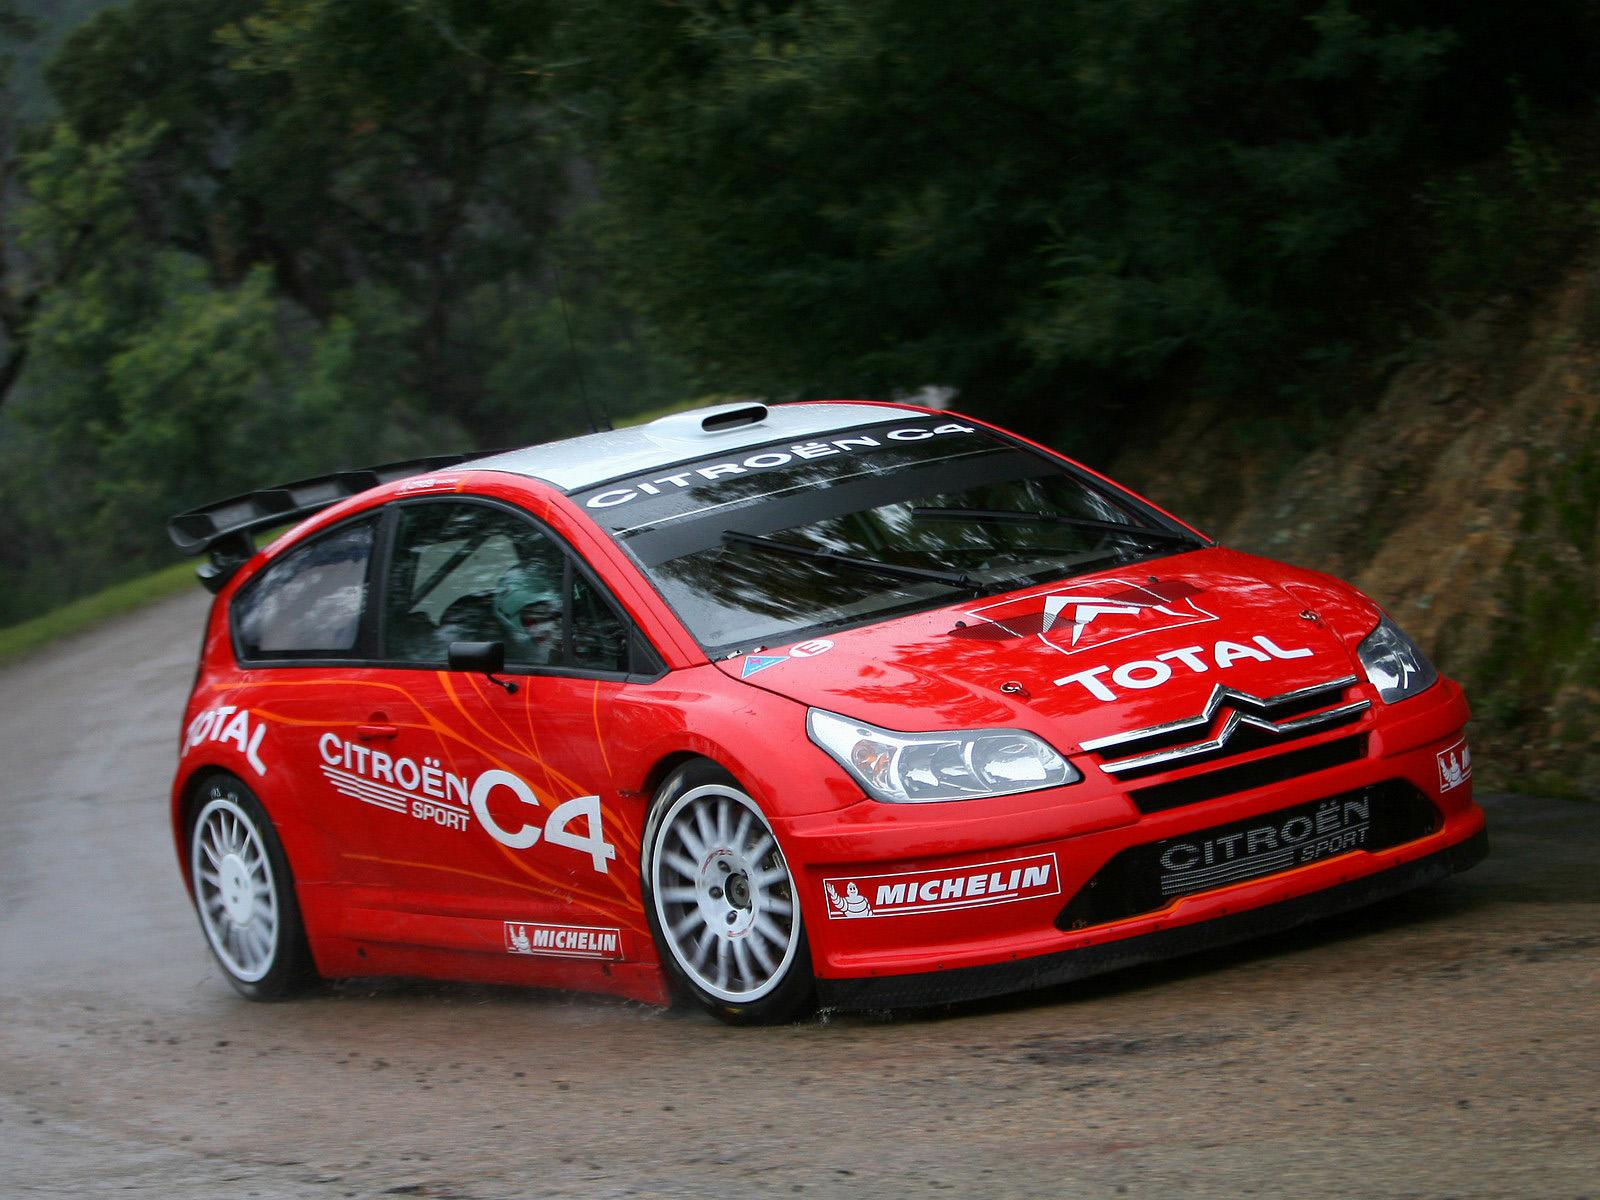 citroen c4 wrc photos photogallery with 4 pics. Black Bedroom Furniture Sets. Home Design Ideas